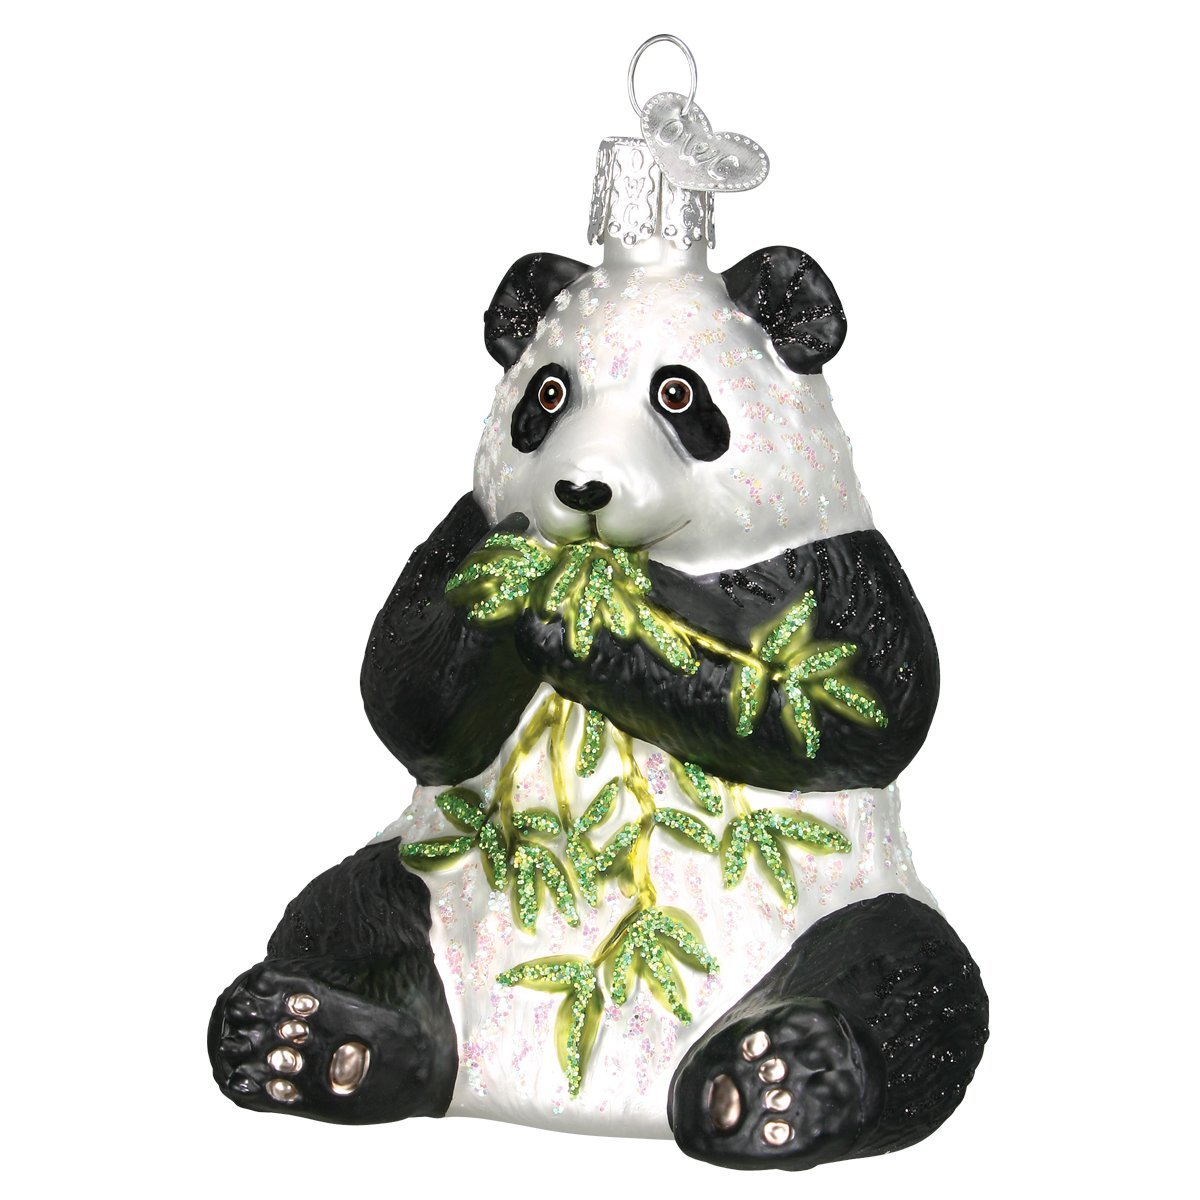 Old World Christmas Ornaments: Panda Glass Blown Ornaments for Christmas Tree